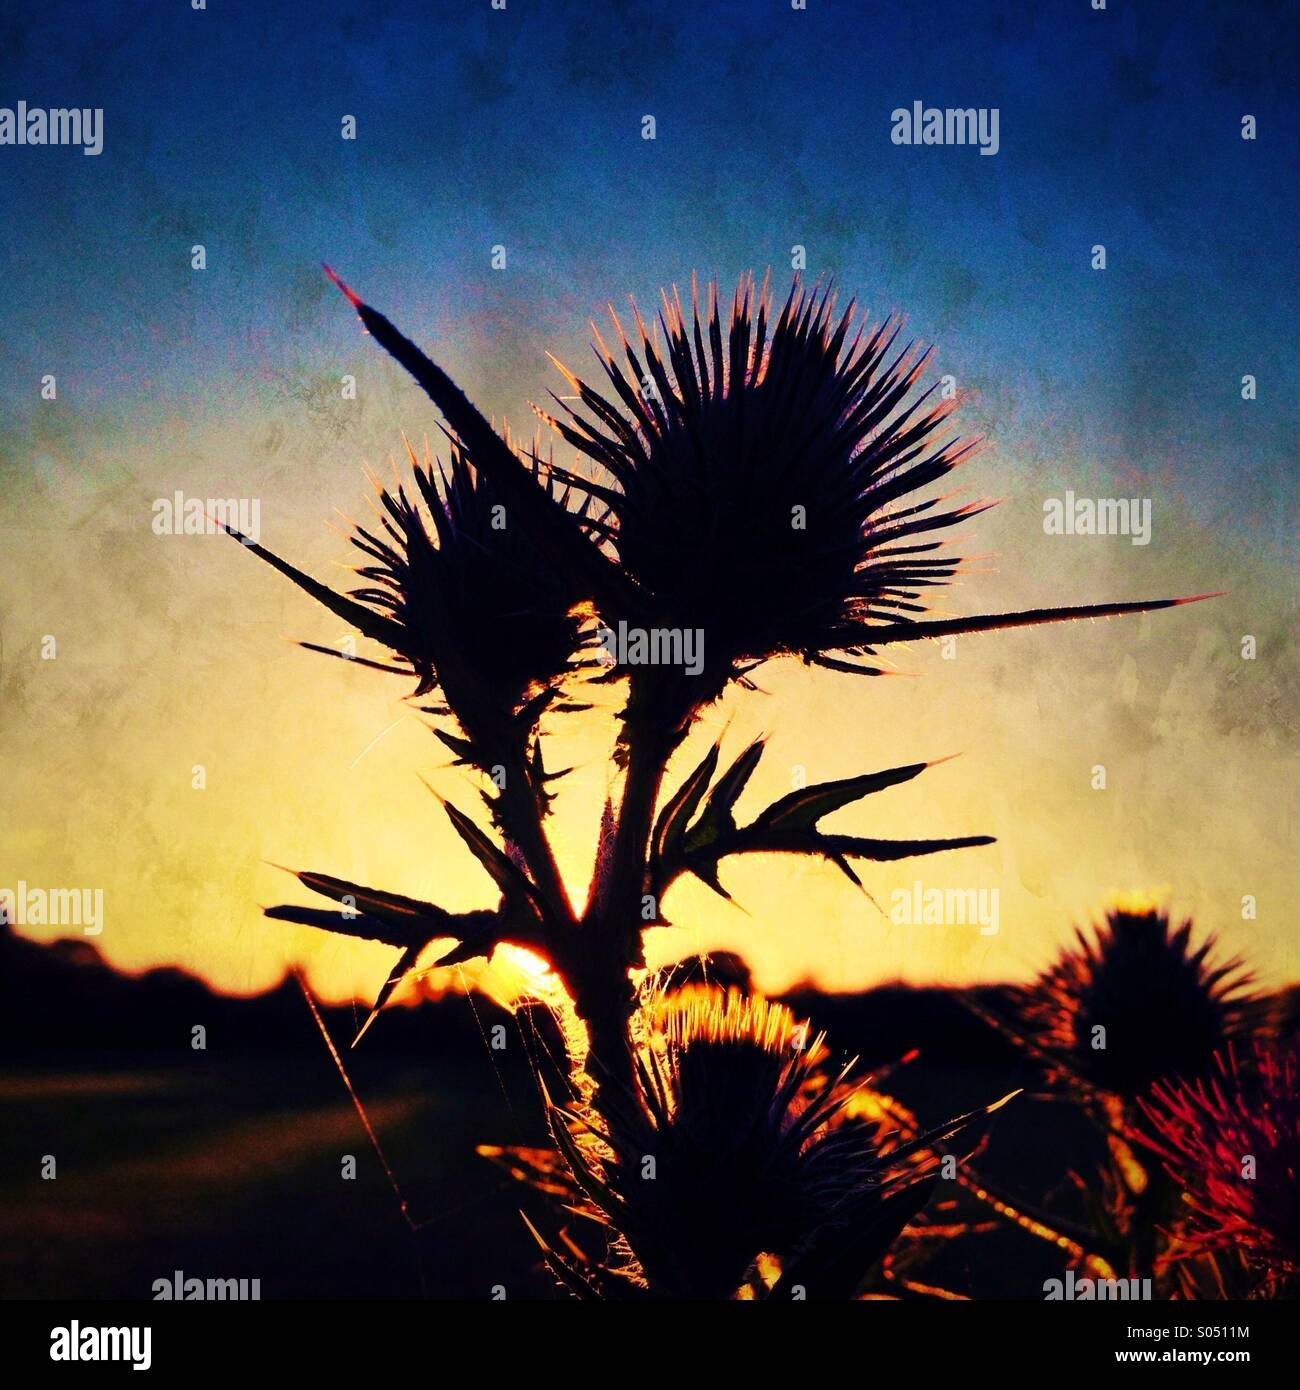 Thistle in silhouette at sunset - Stock Image